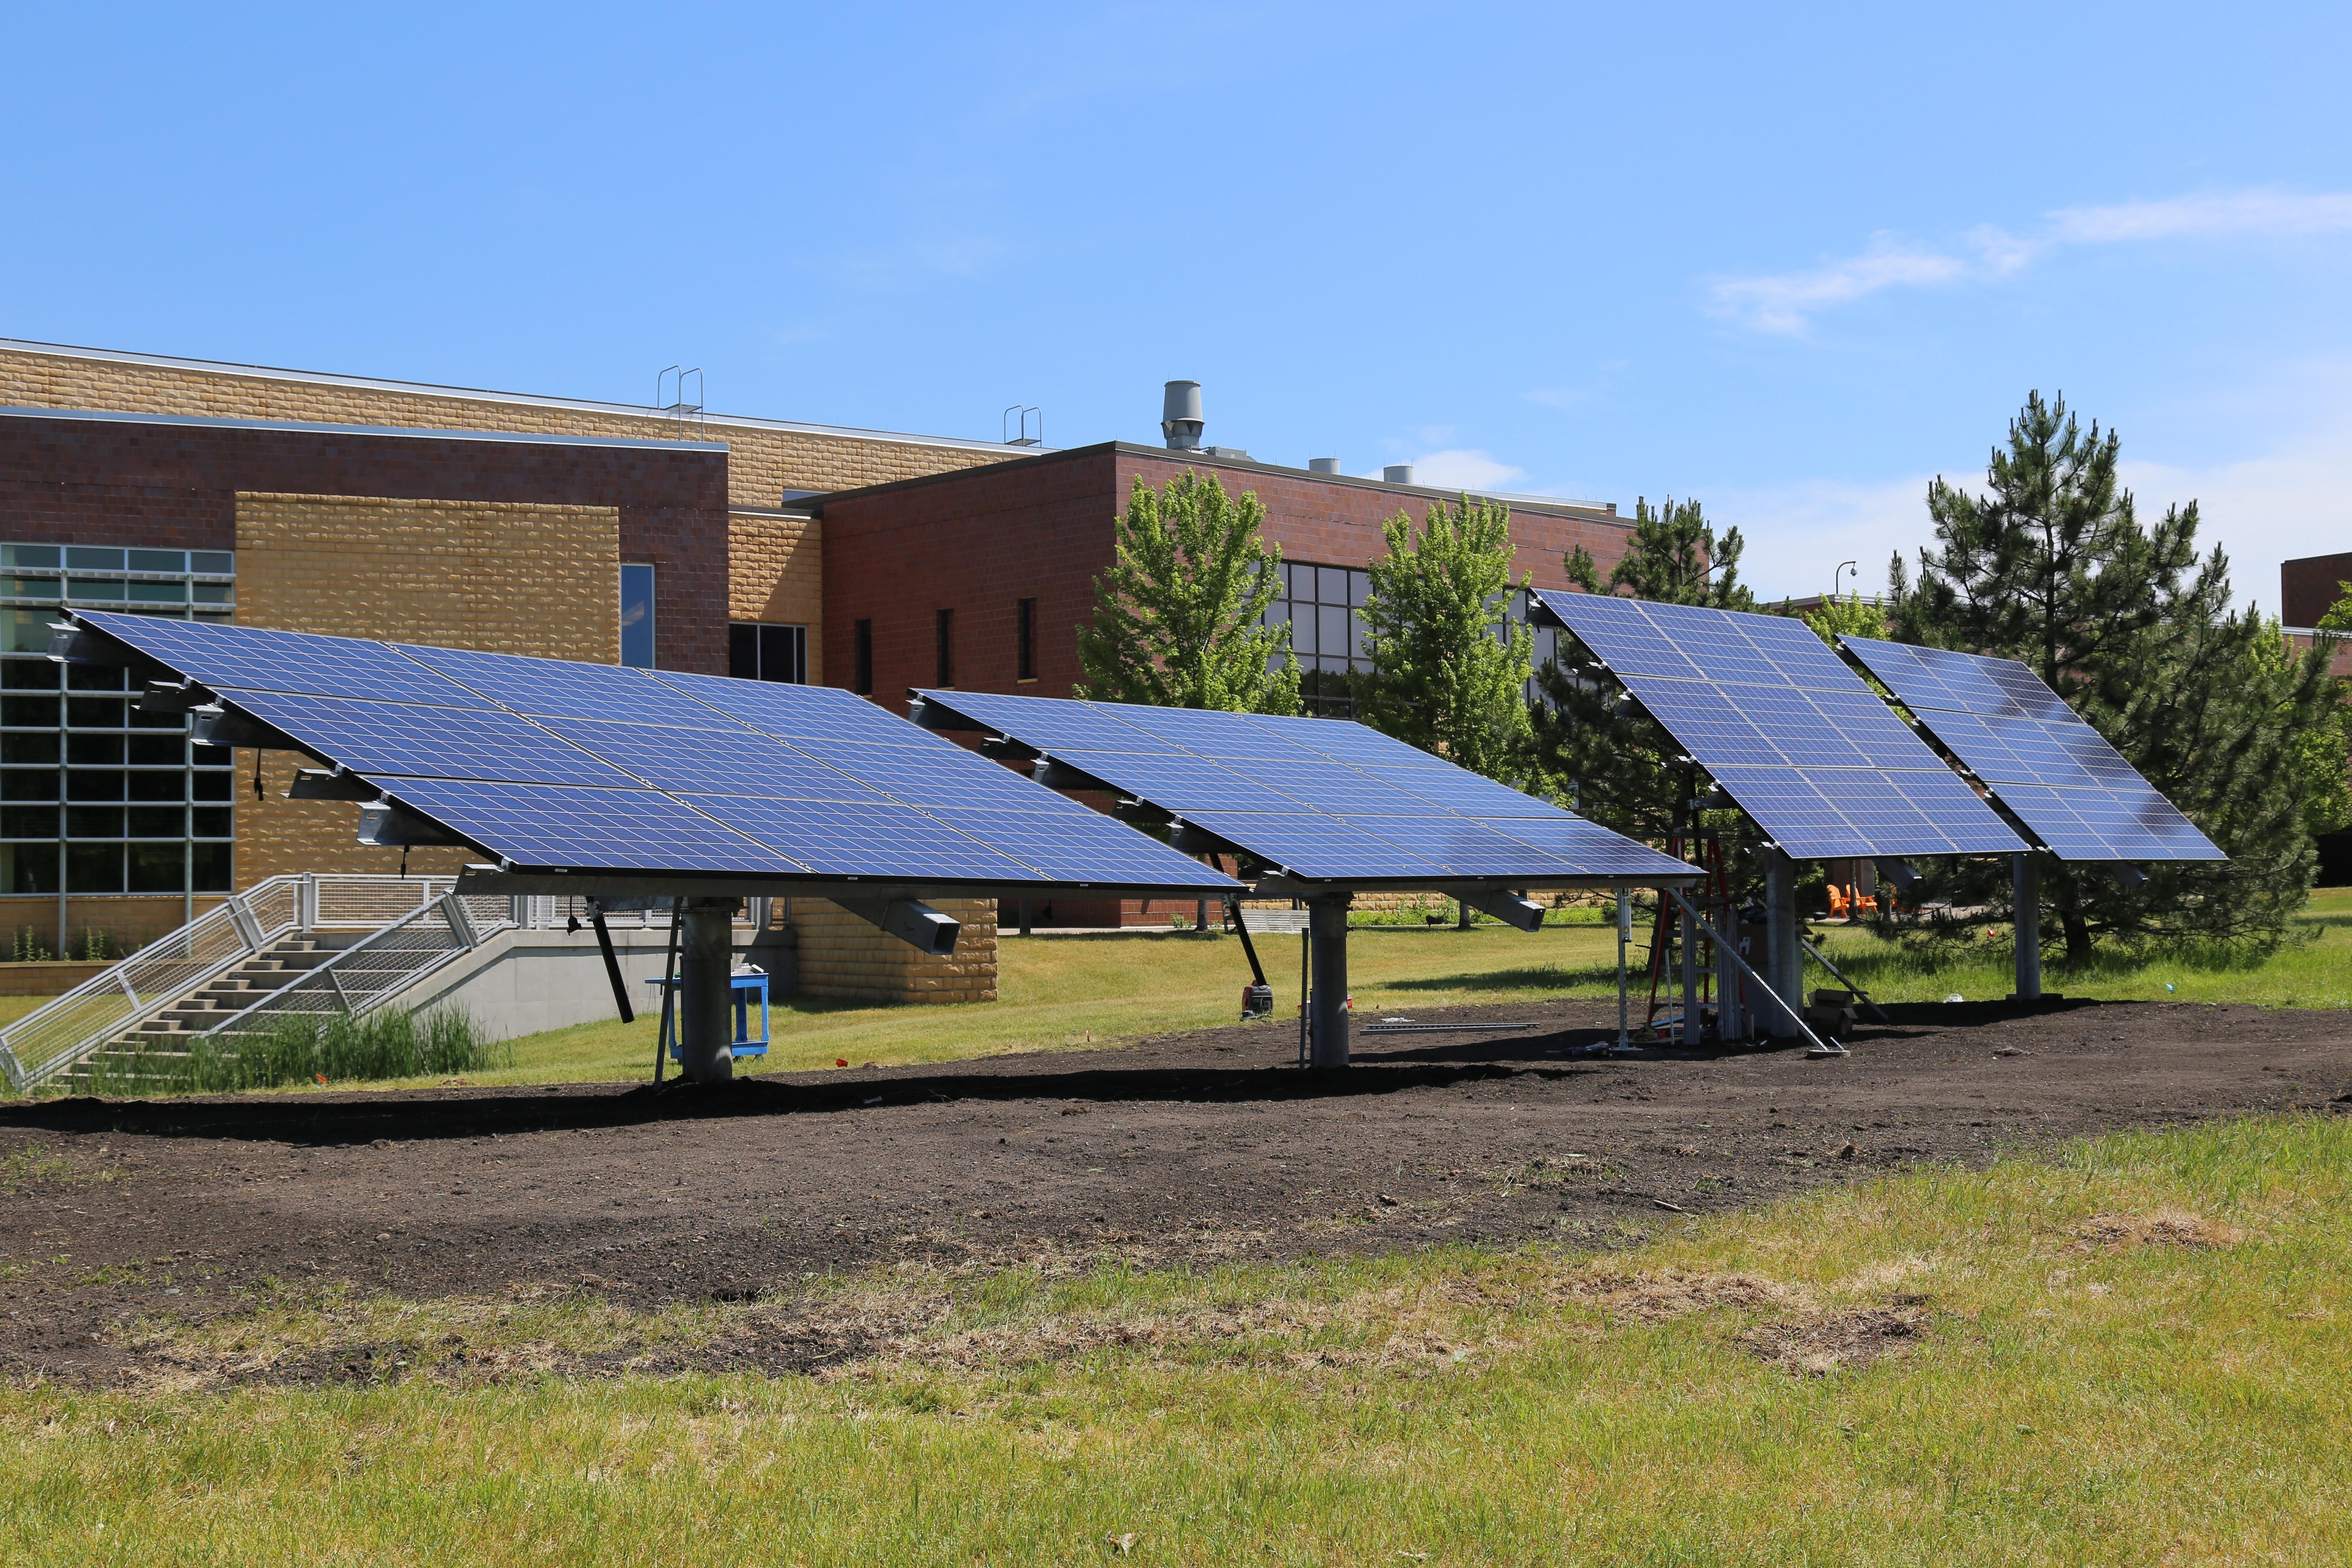 Image of solar panels in front of Century College.